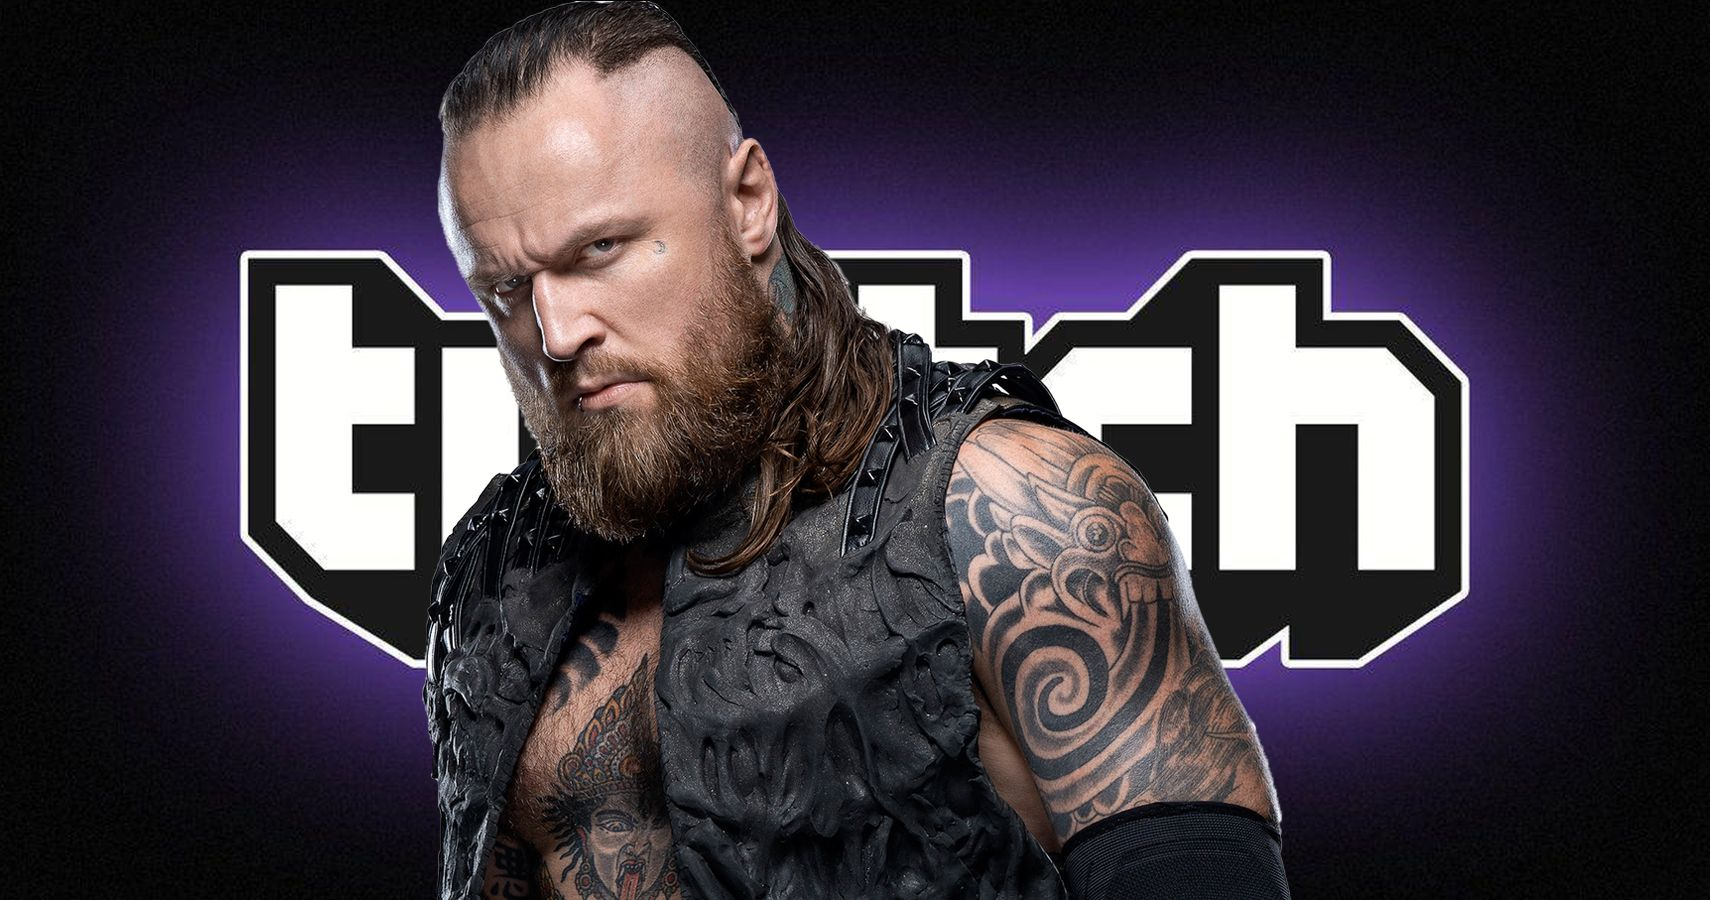 Aleister Black Gives Details About His WWE Release On Twitch